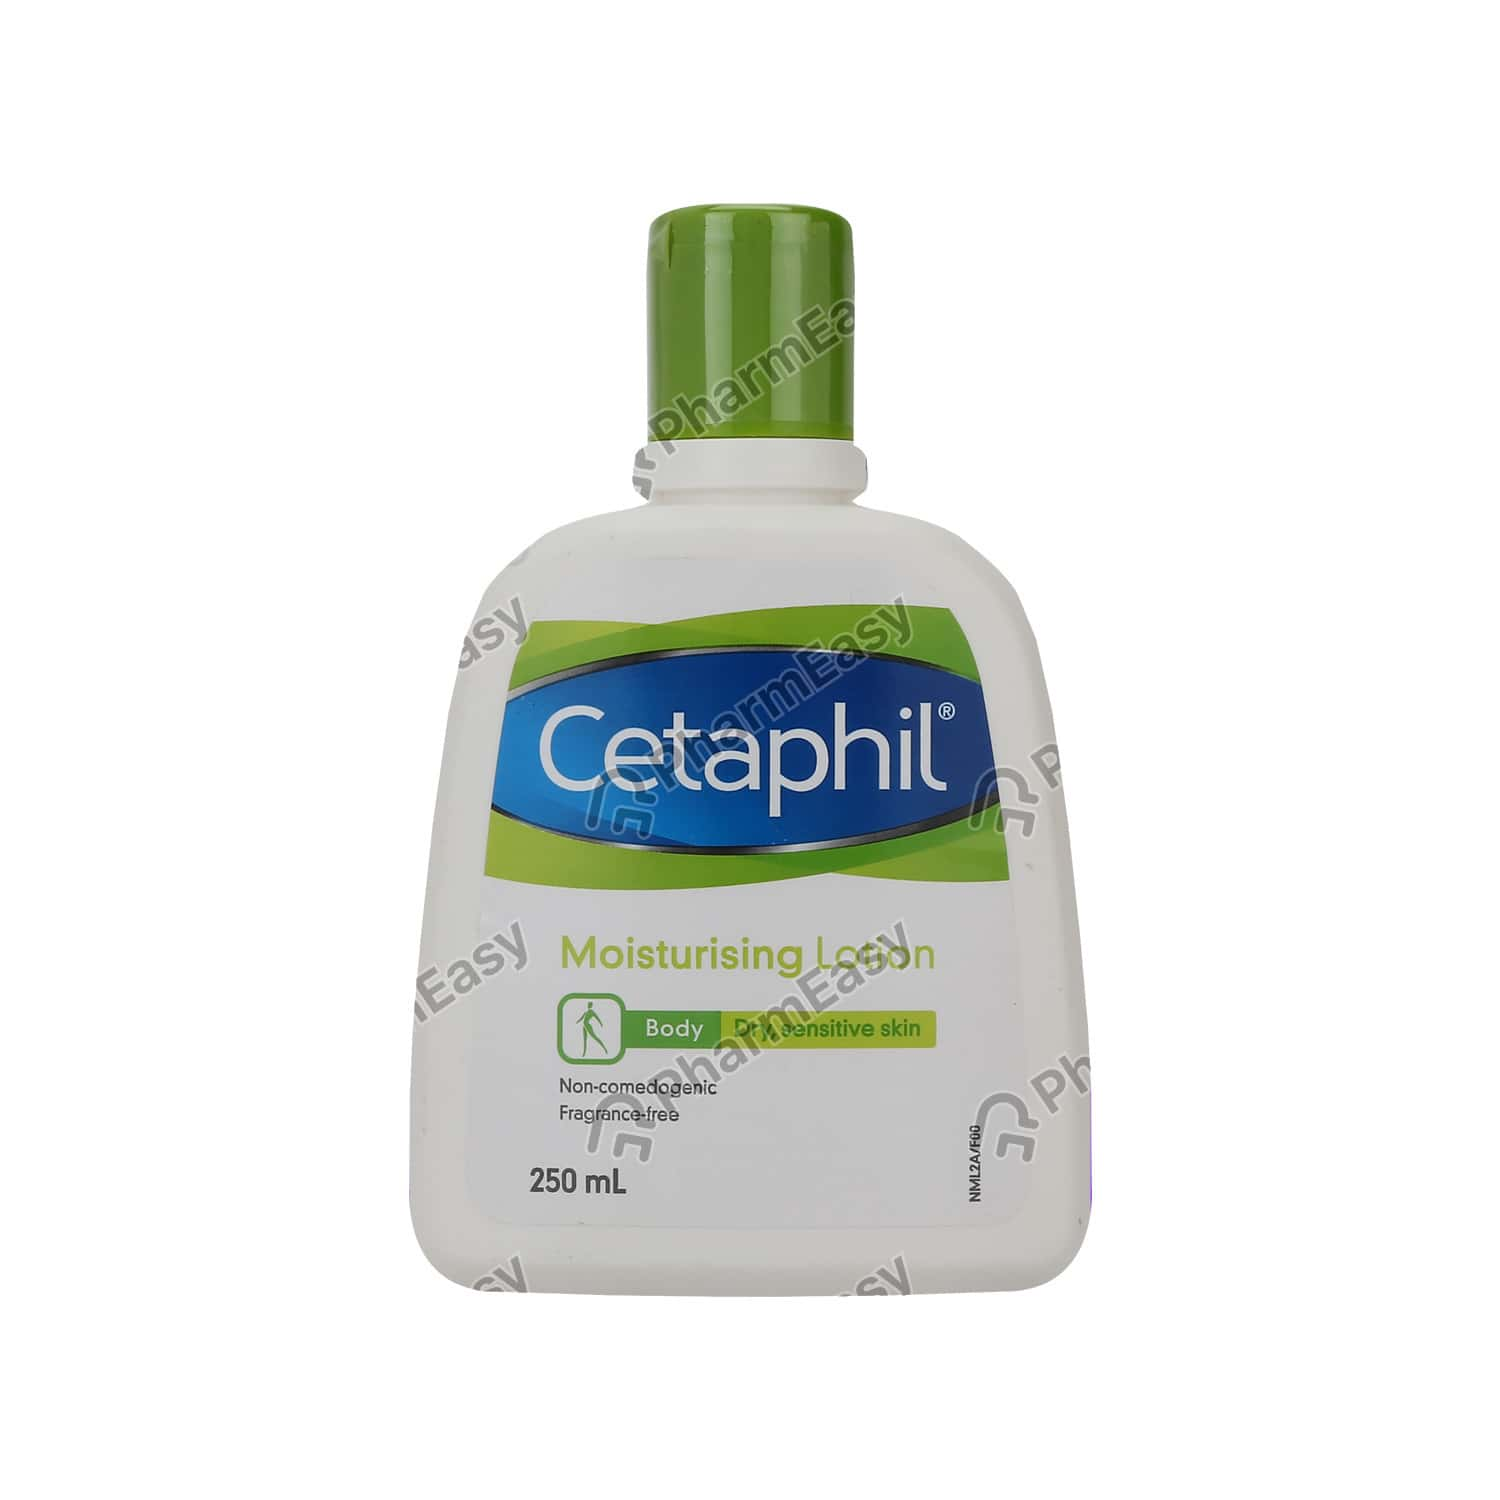 Cetaphil Moist Lotion 250ml